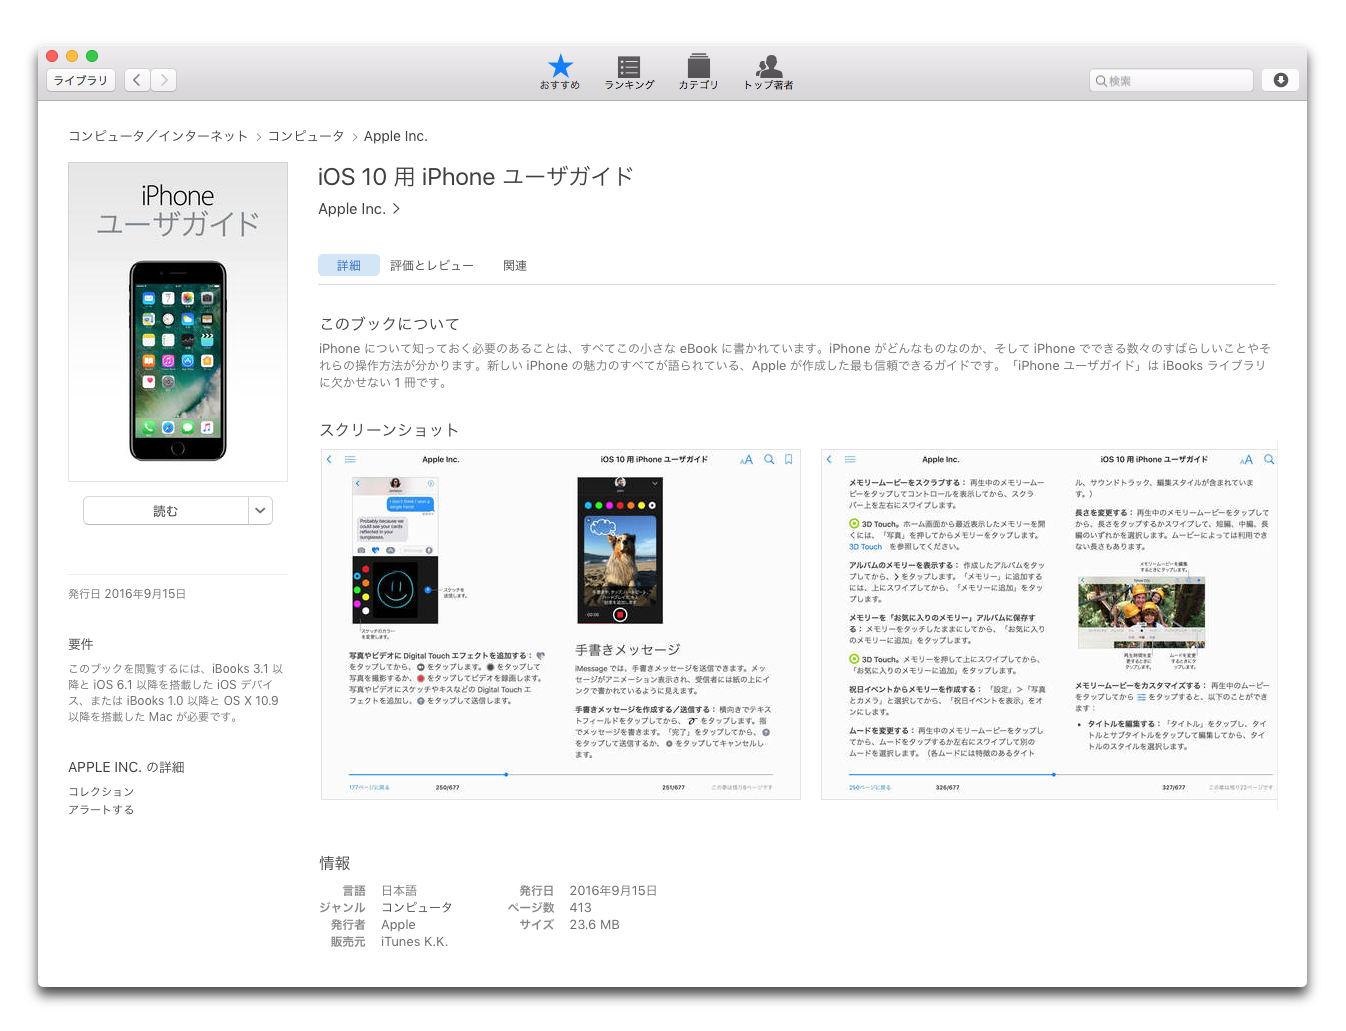 Apple、iBooks Storeで「iOS 10用 iPhone ユーザガイド」を配布